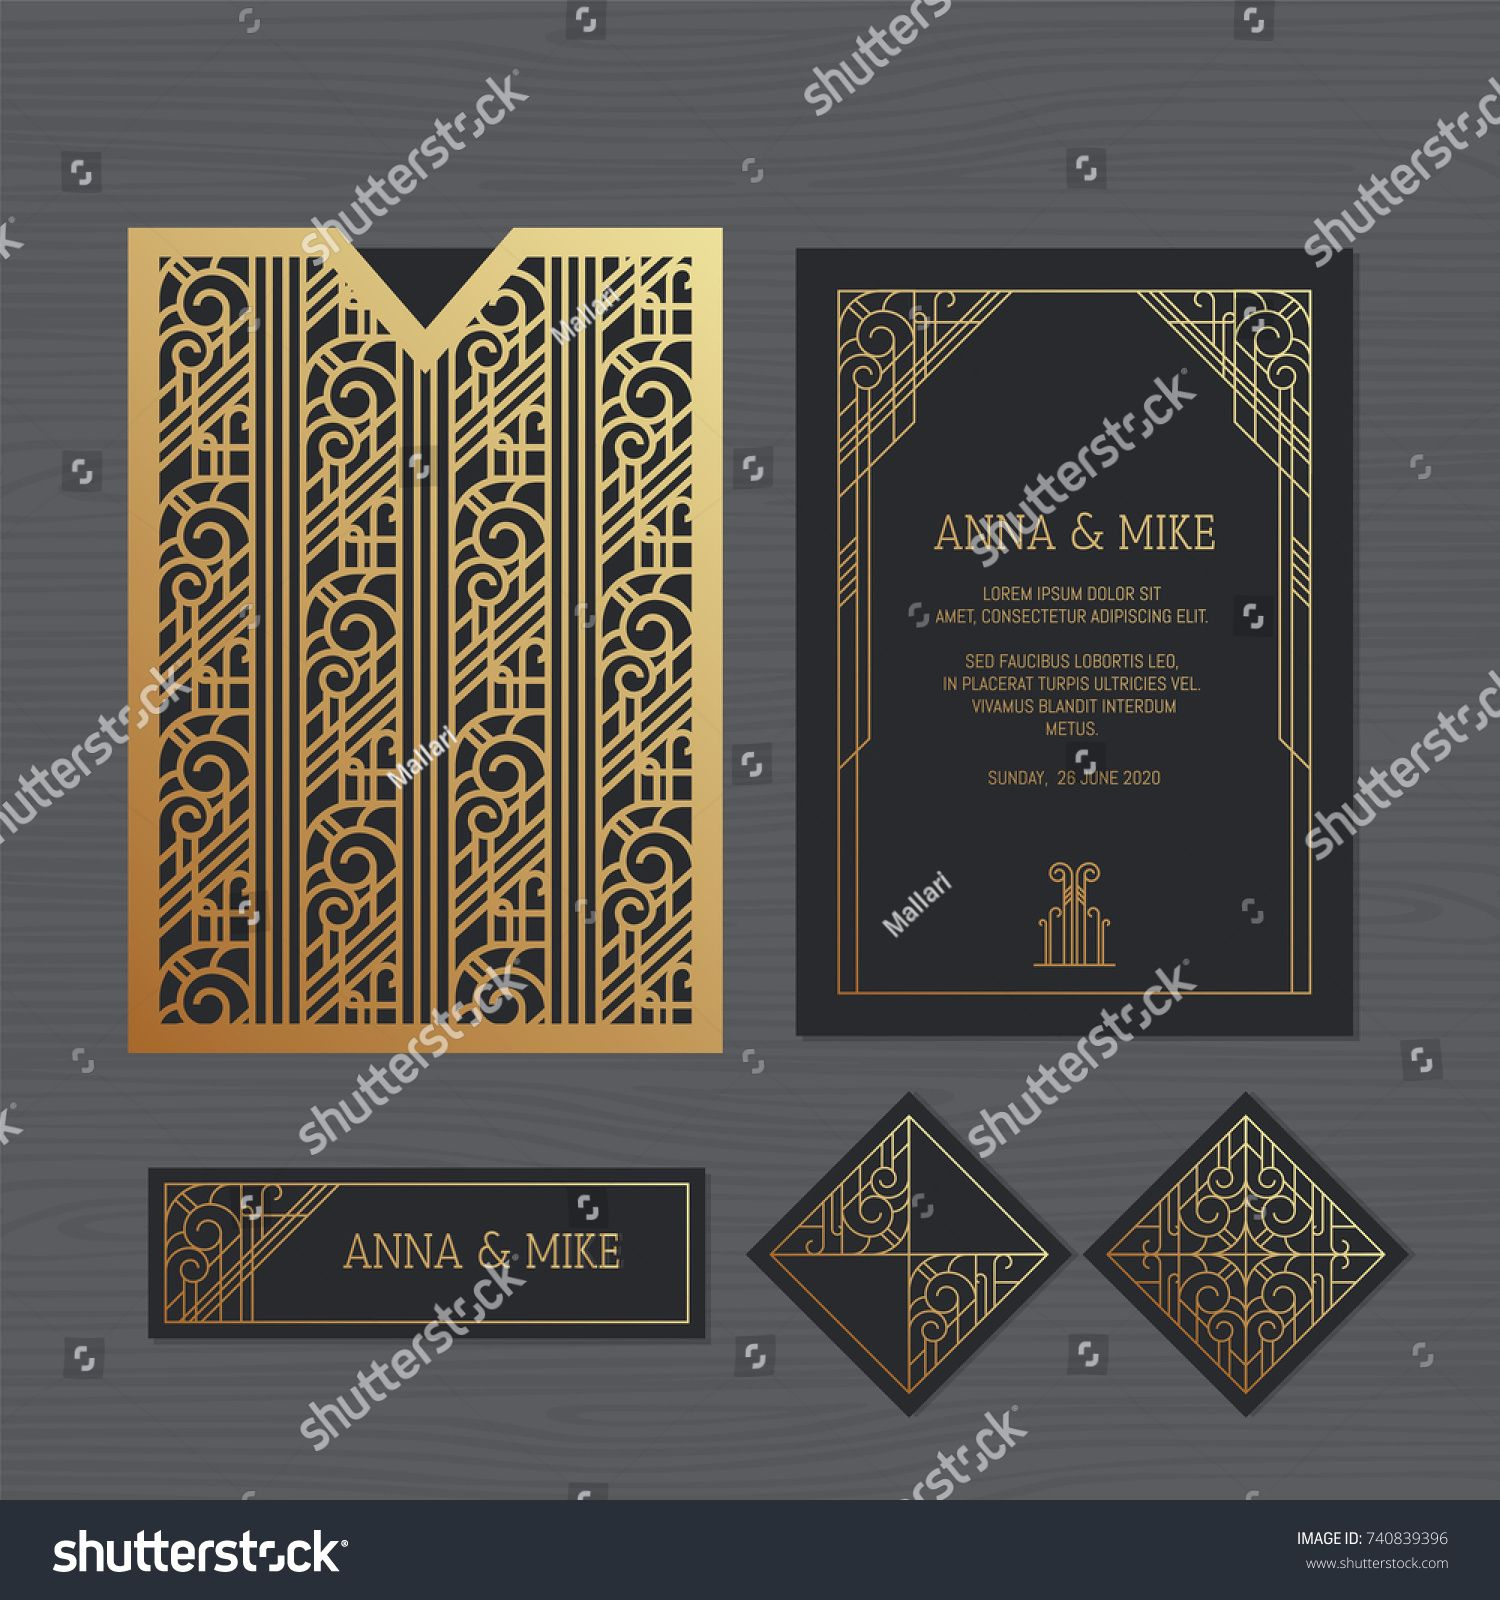 Luxury Wedding Invitation Or Greeting Card With Geometric Ornament Art Deco Style Paper Lace Envelope Template Envelope Template Art Deco Fashion Paper Lace